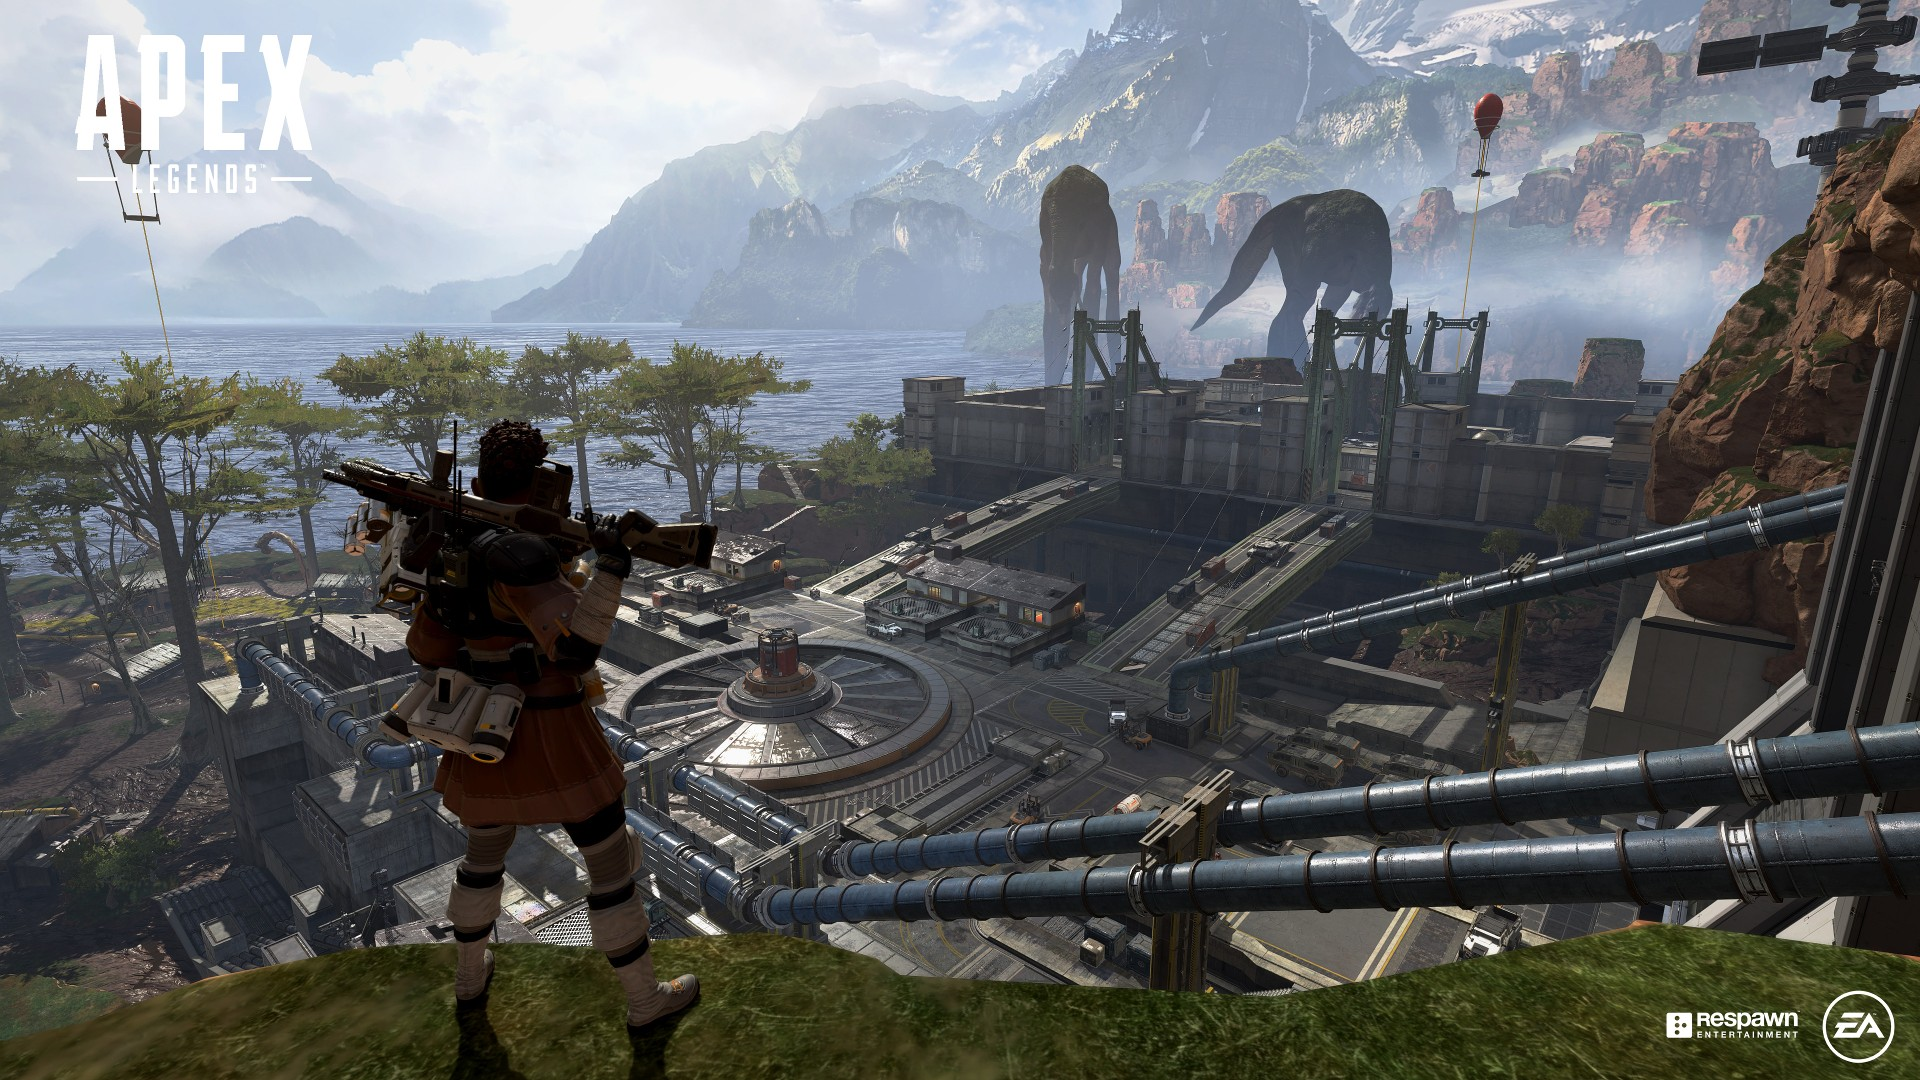 EA didn't pre-announce Apex Legends because it was scared to